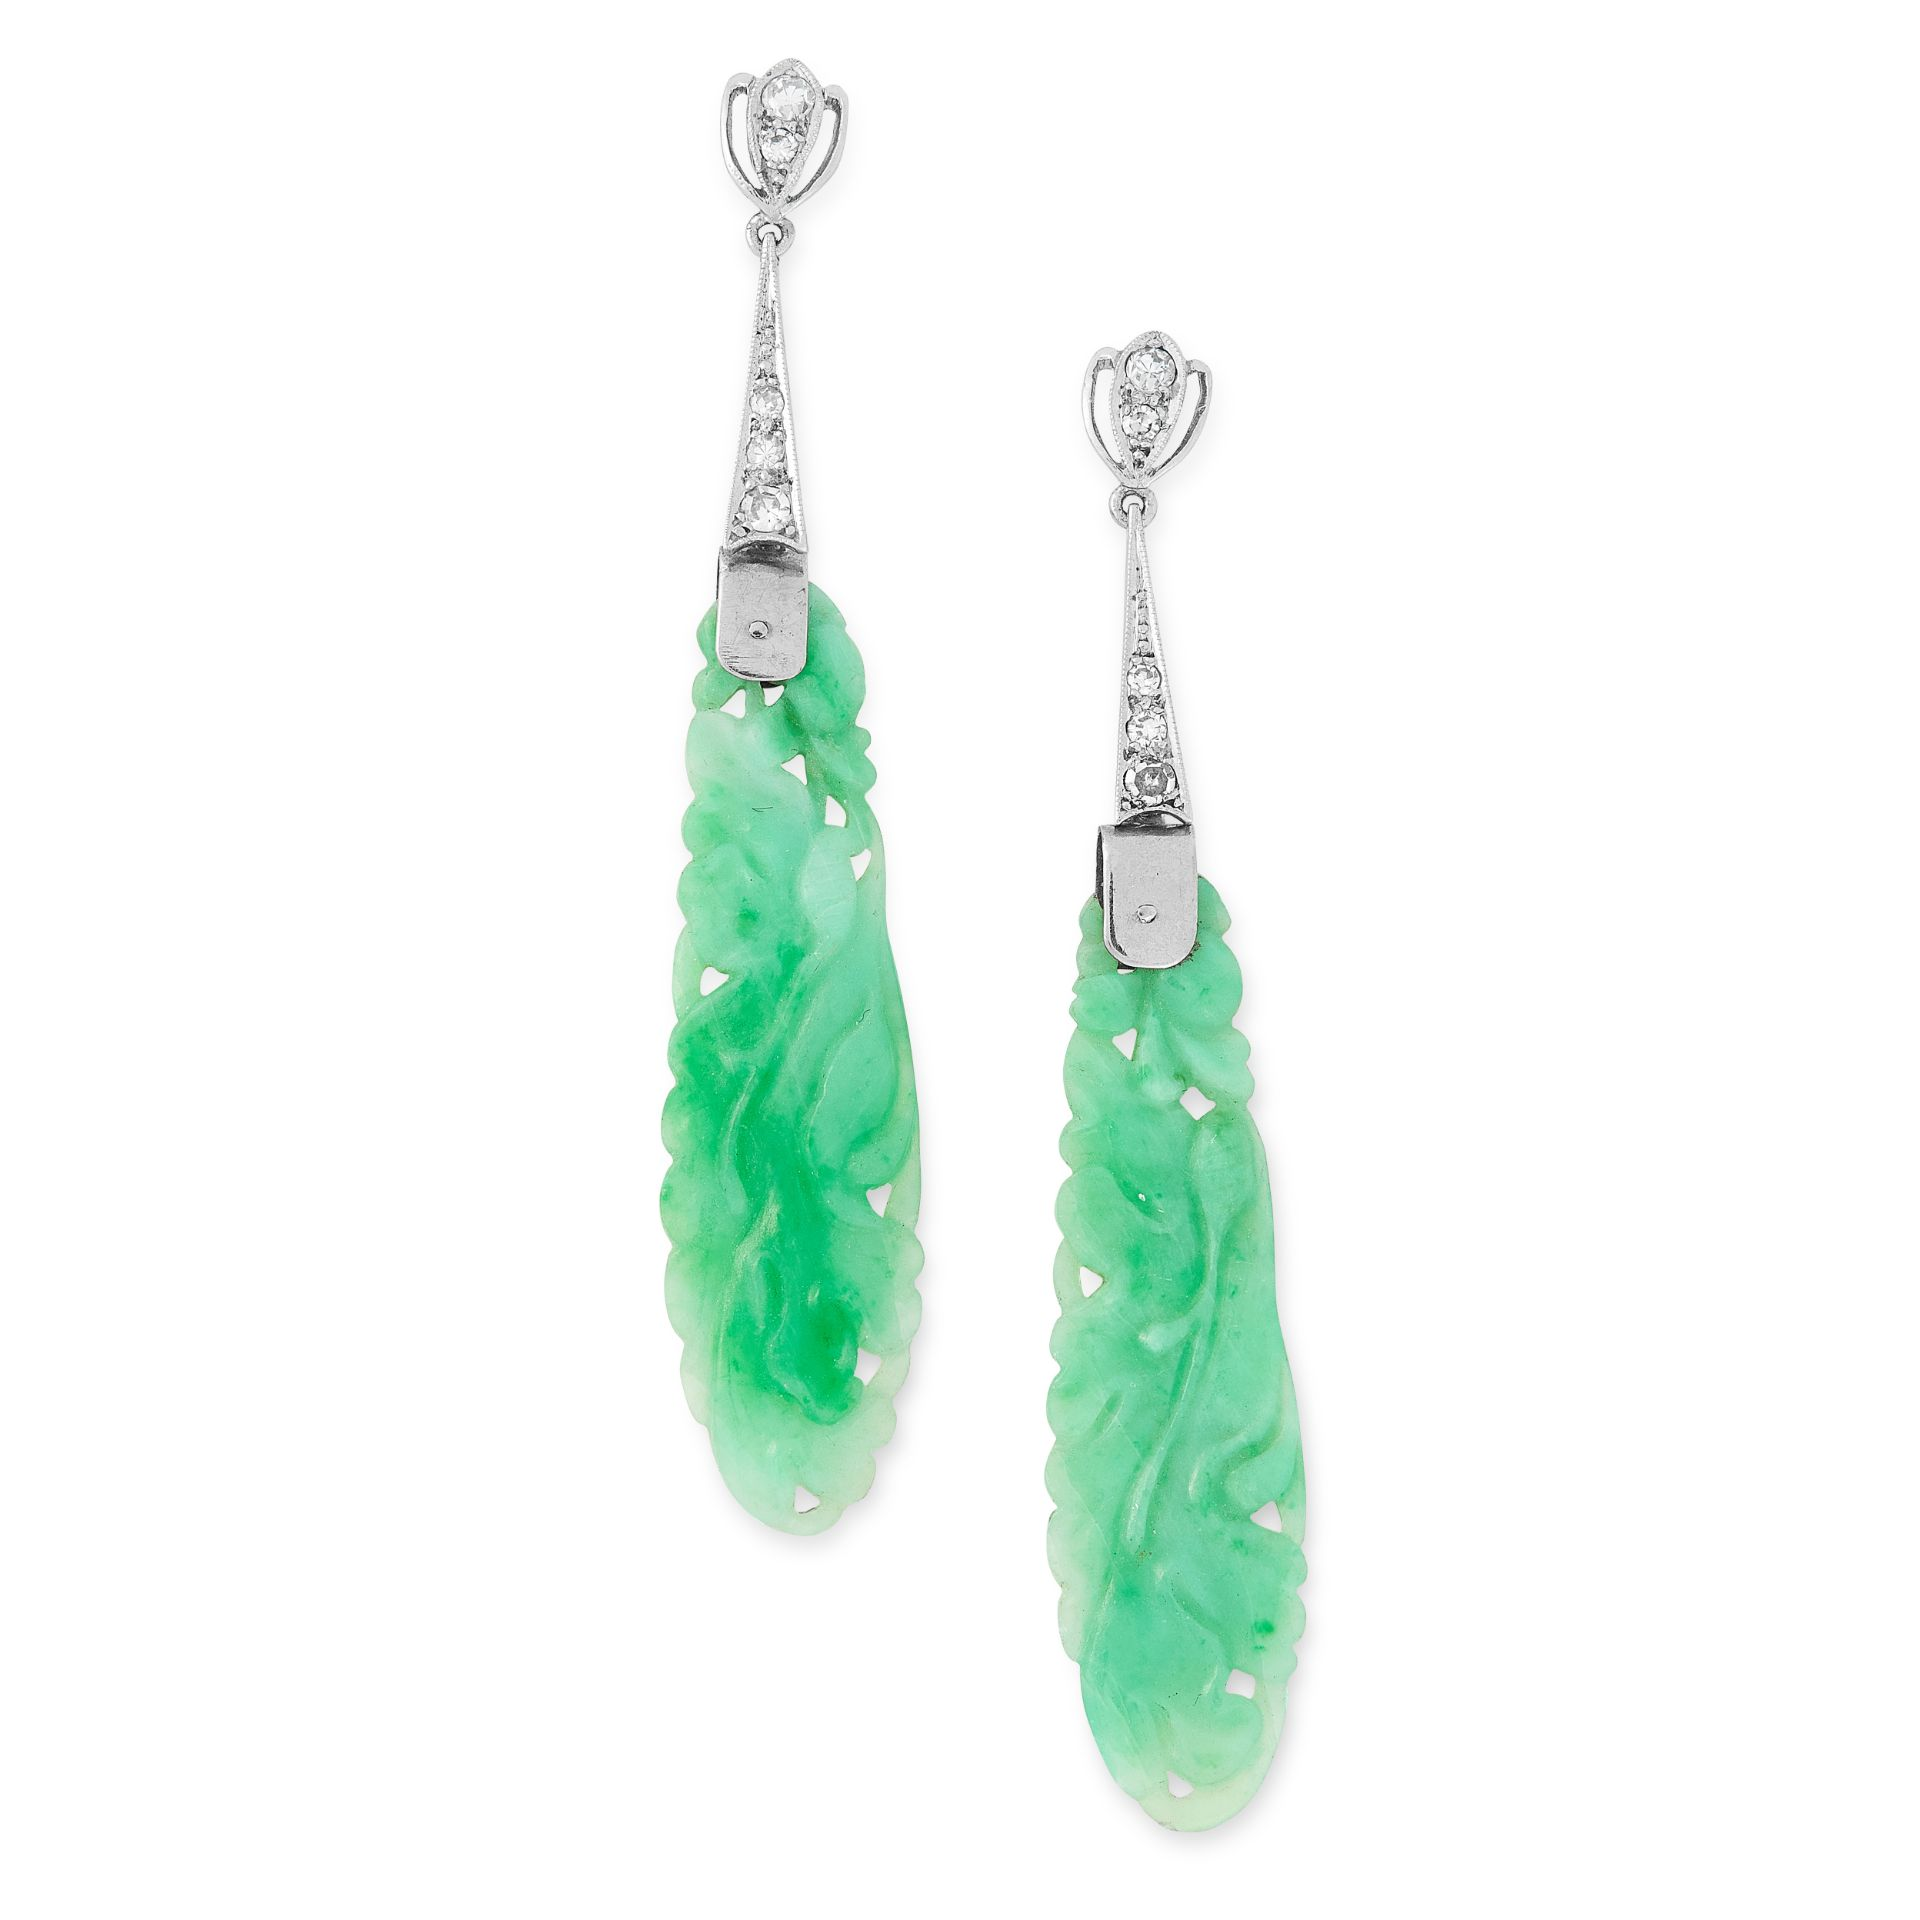 Los 51 - A PAIR OF ART DECO JADEITE JADE AND DIAMOND EARRINGS each set with a Chinese carved piece of jadeite